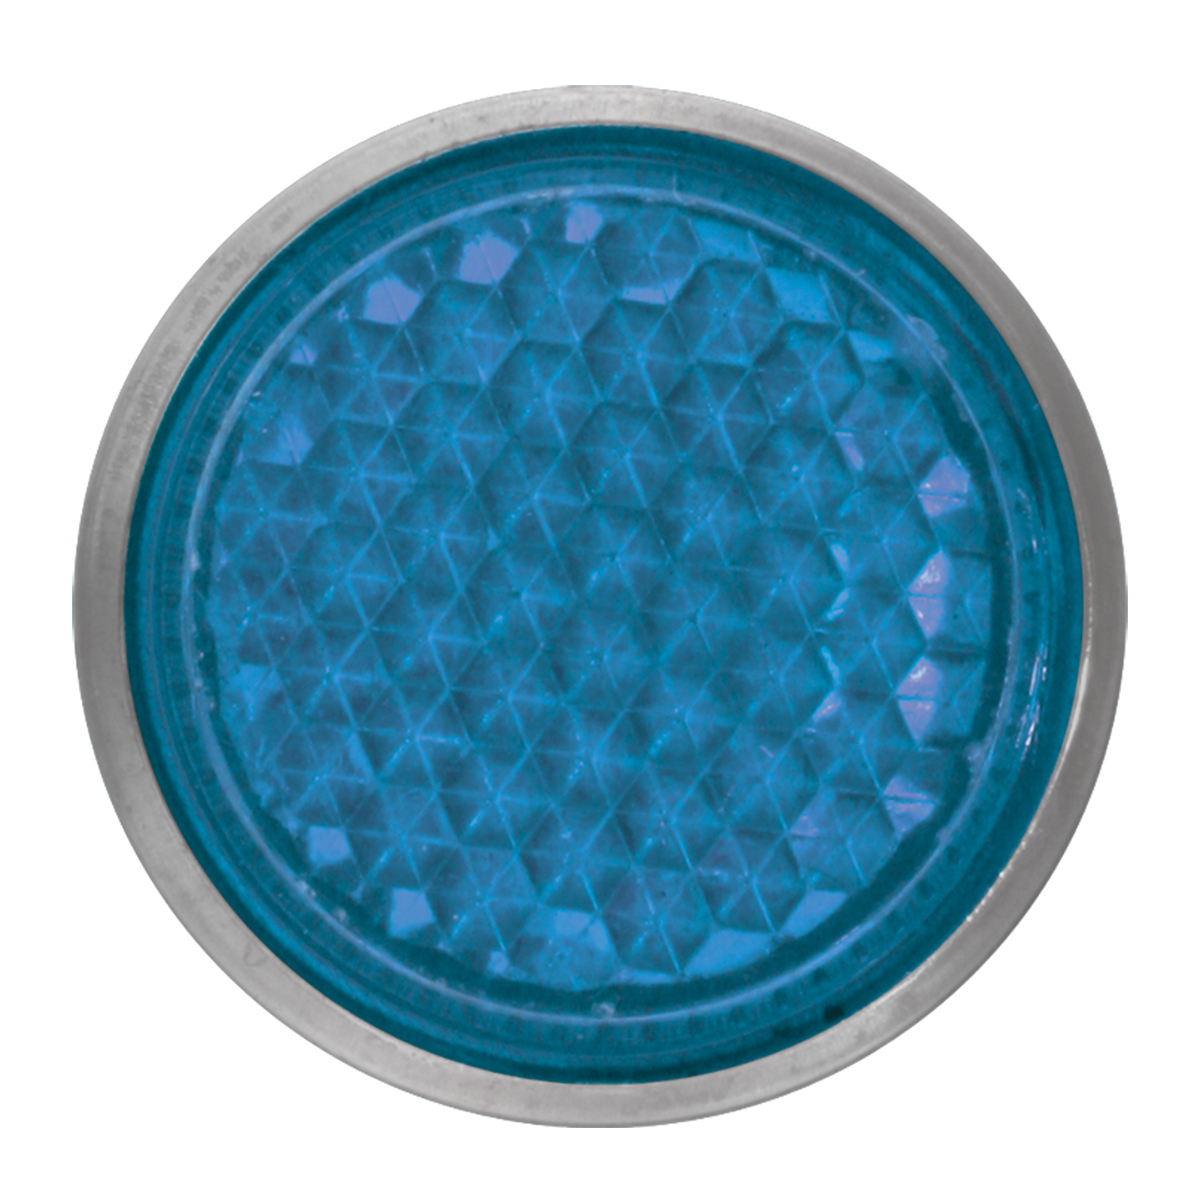 "Blue 5/8"" Round Screw Type Mini Reflector"